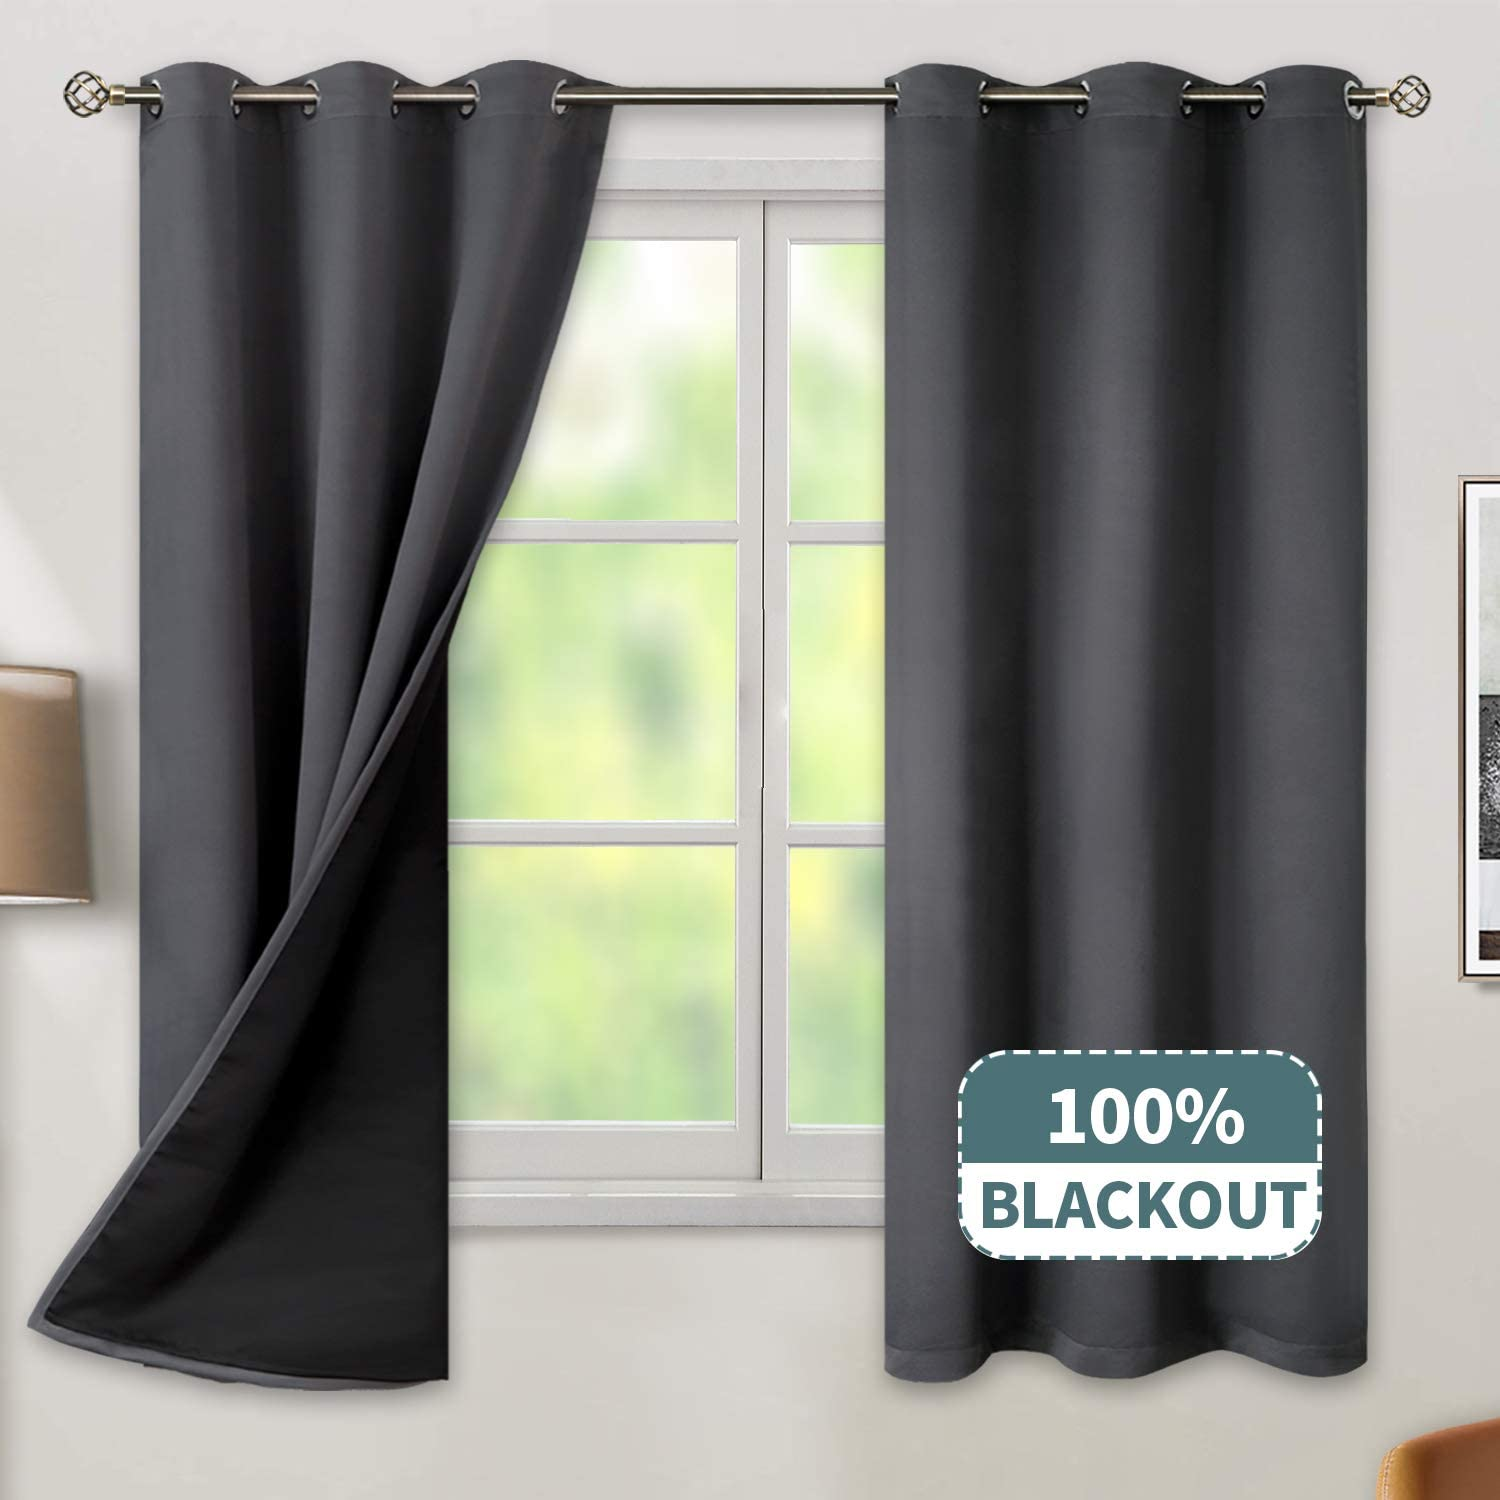 BGment Thermal Insulated 100% Blackout Curtains for Bedroom with Black Liner, Double Layer Full Room Darkening Noise Reducing Grommet Curtain (42 x 63 Inch, Dark Grey, 2 Panels)